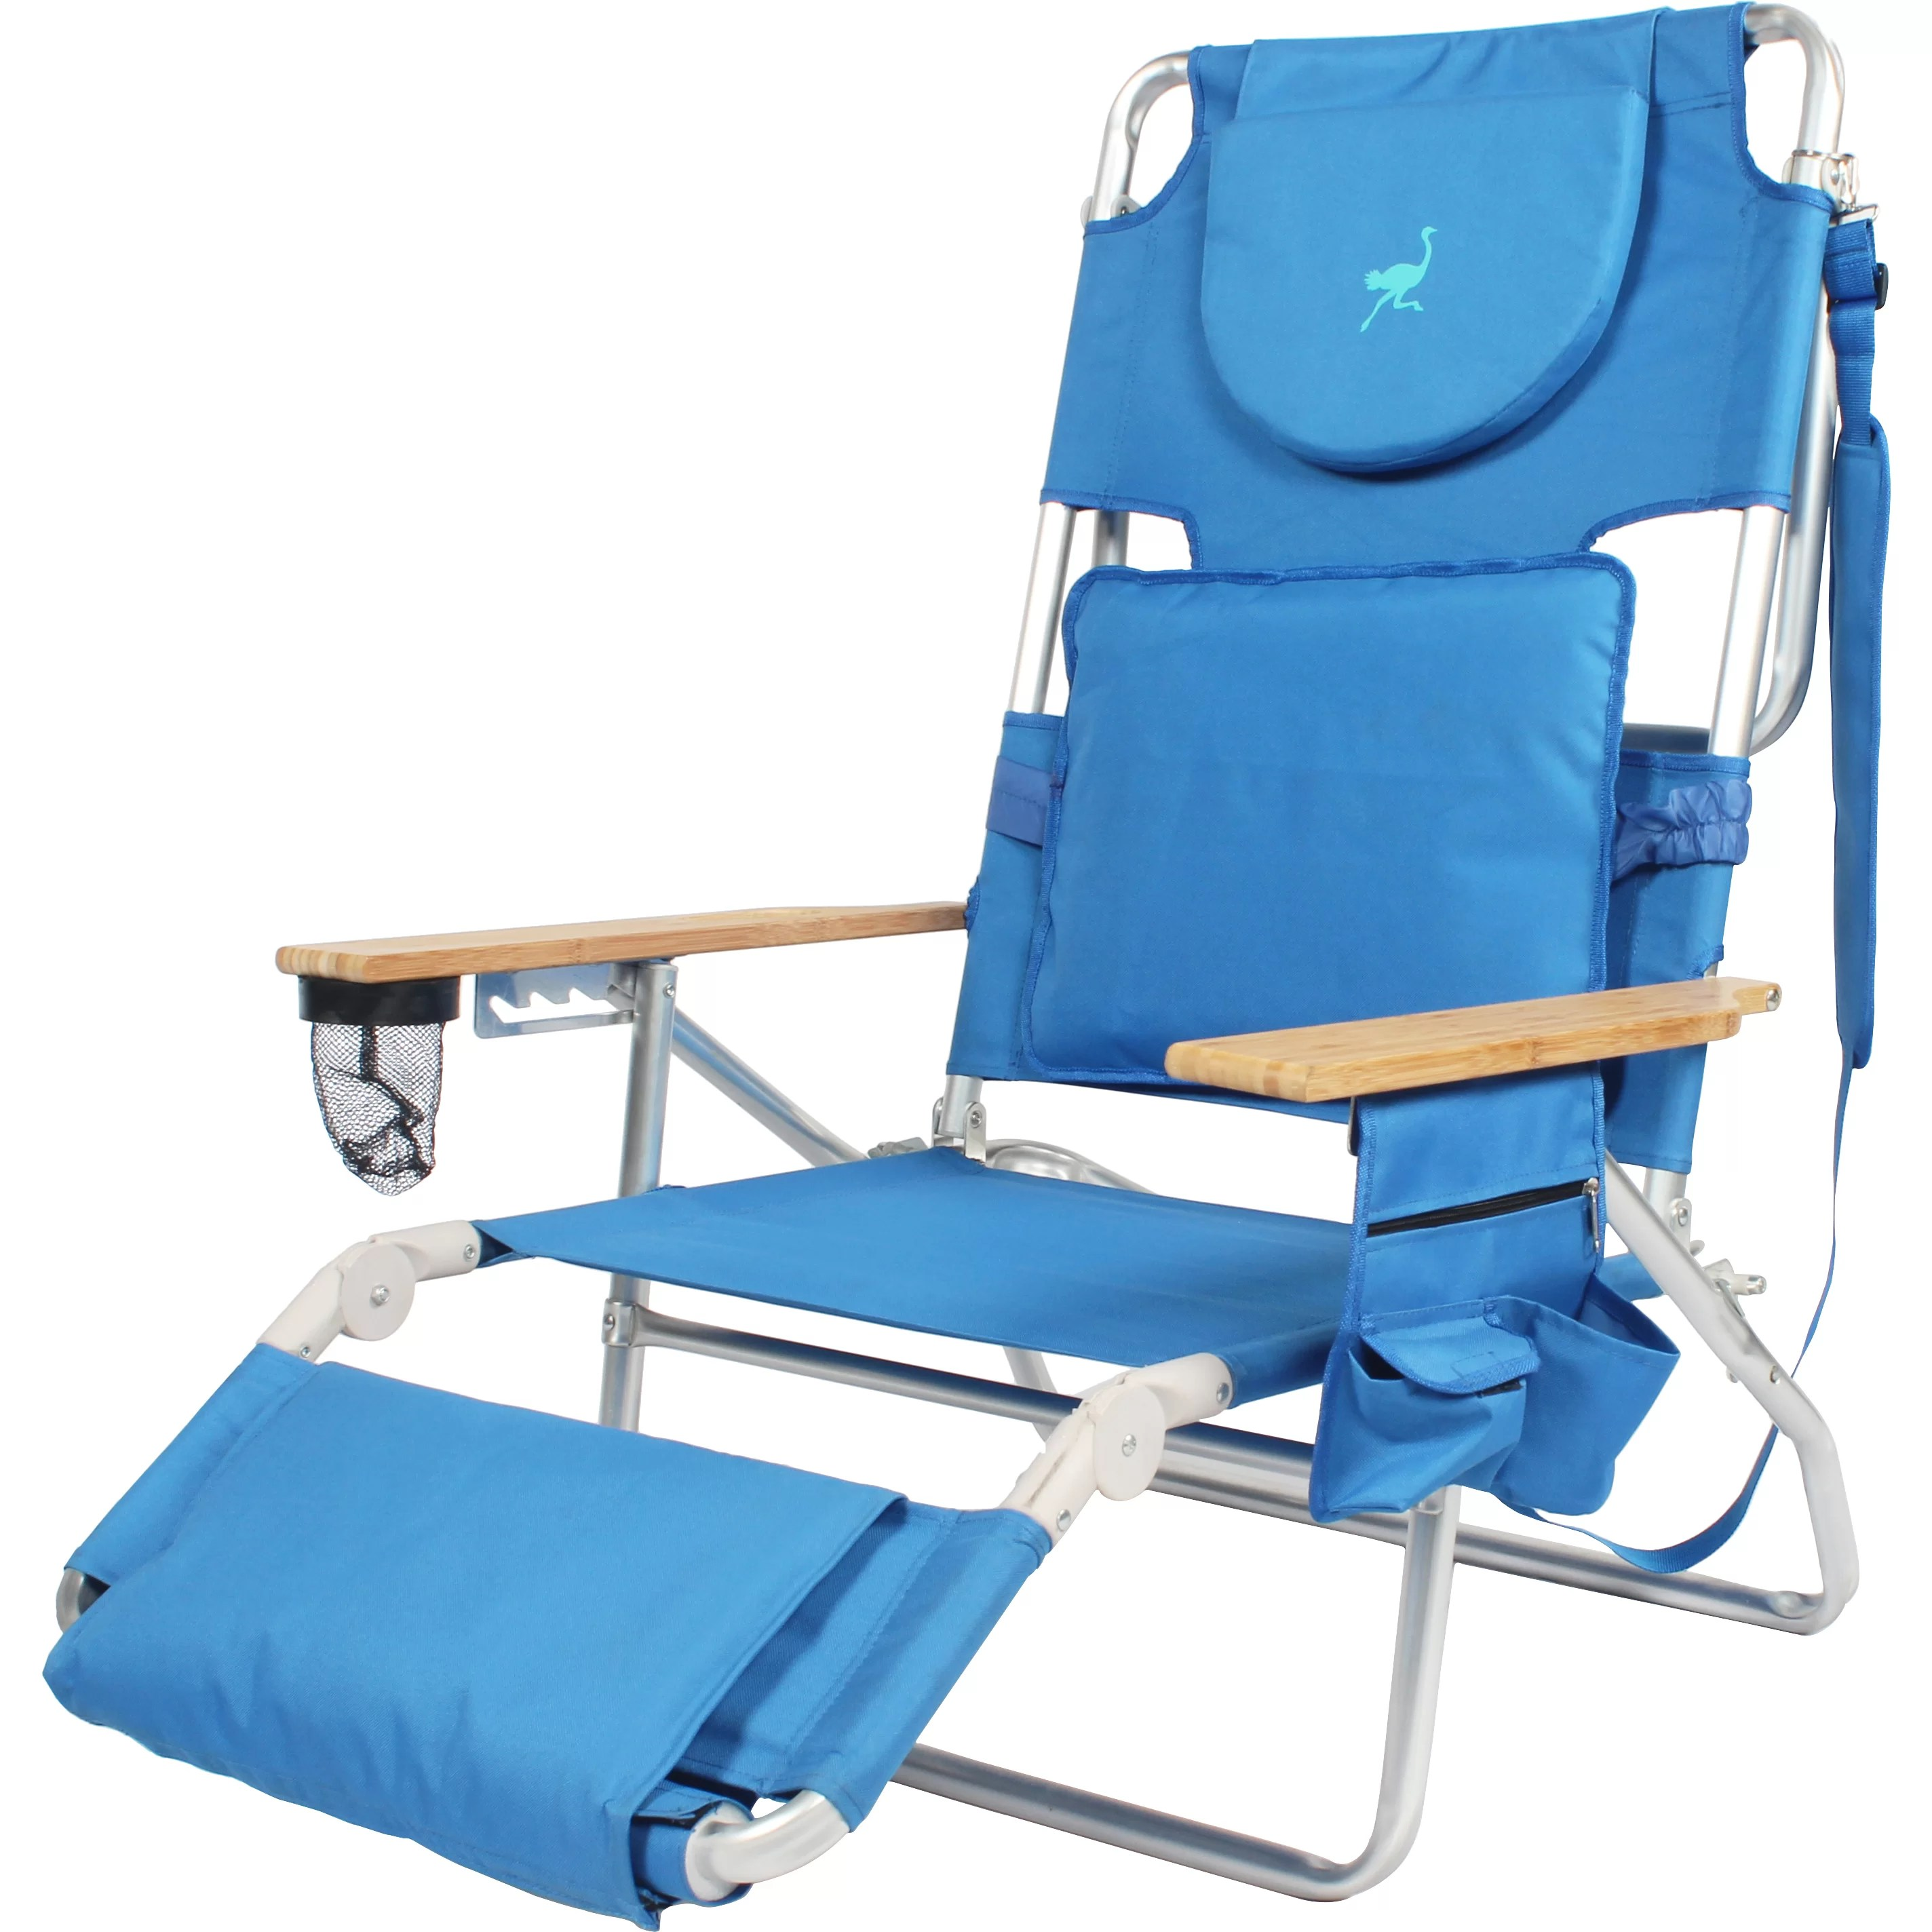 padded beach chair light blue banquet covers ostrich deluxe and reviews wayfair